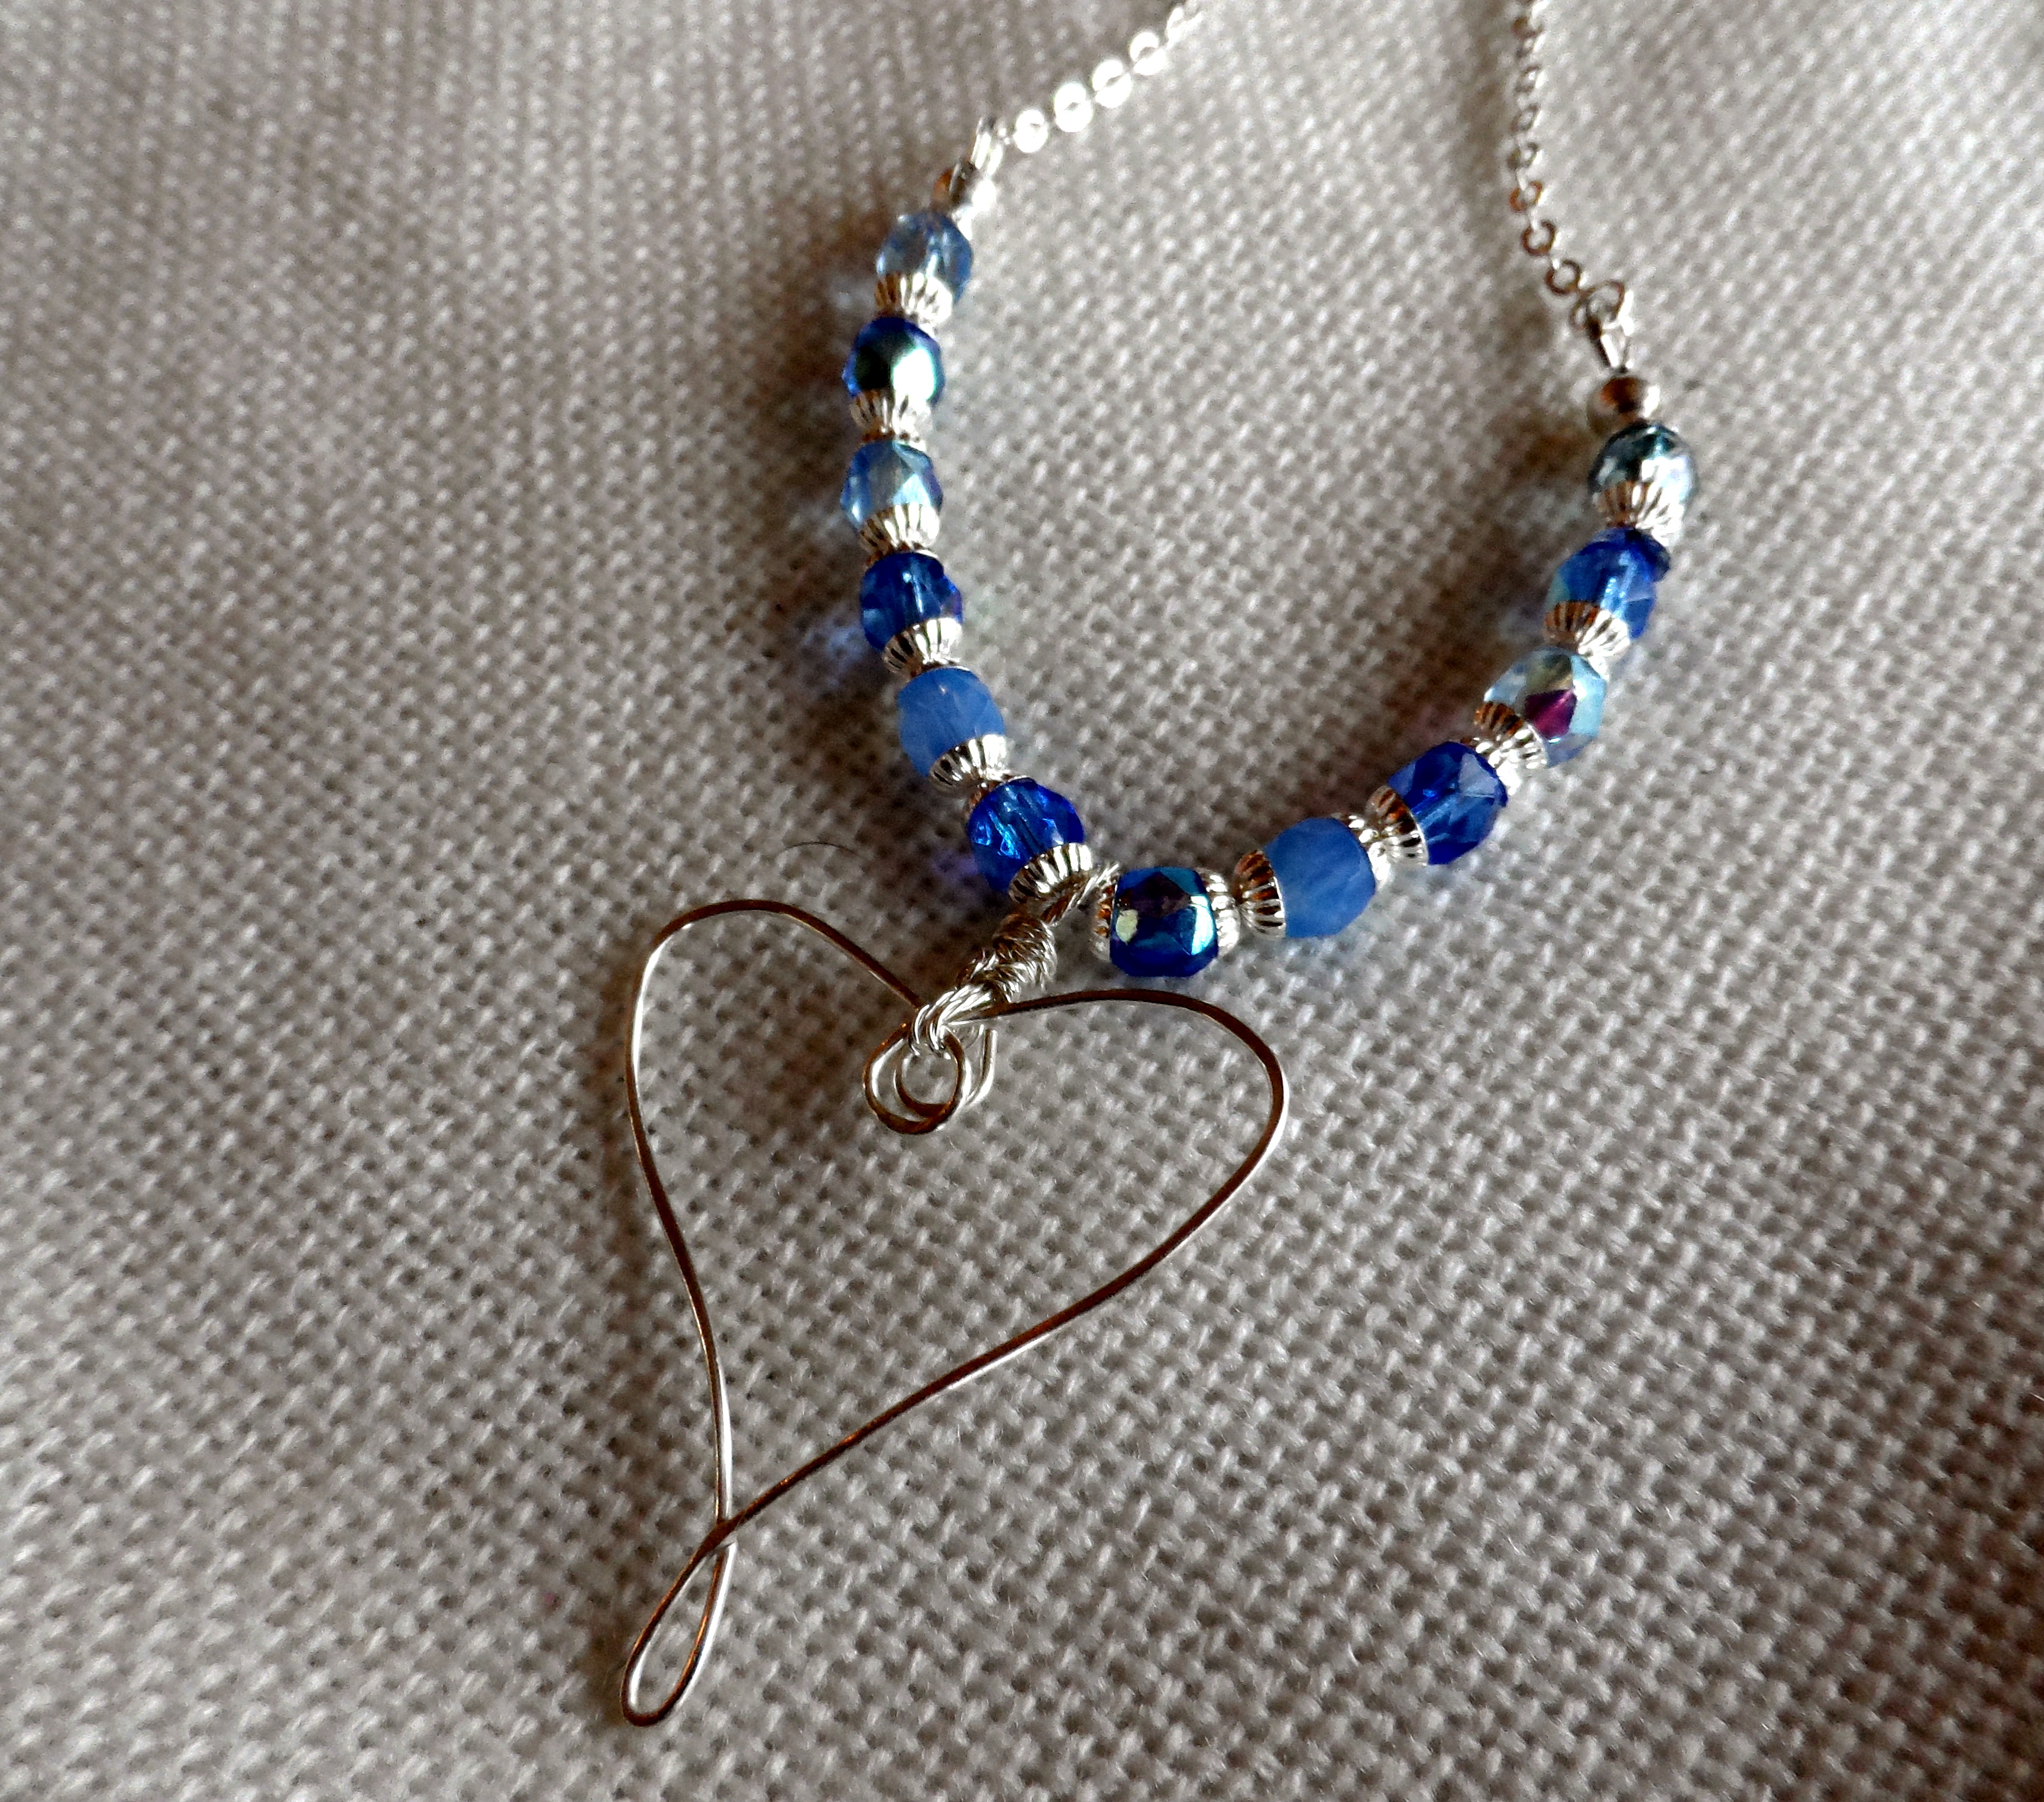 Fun With Wire Wrapping